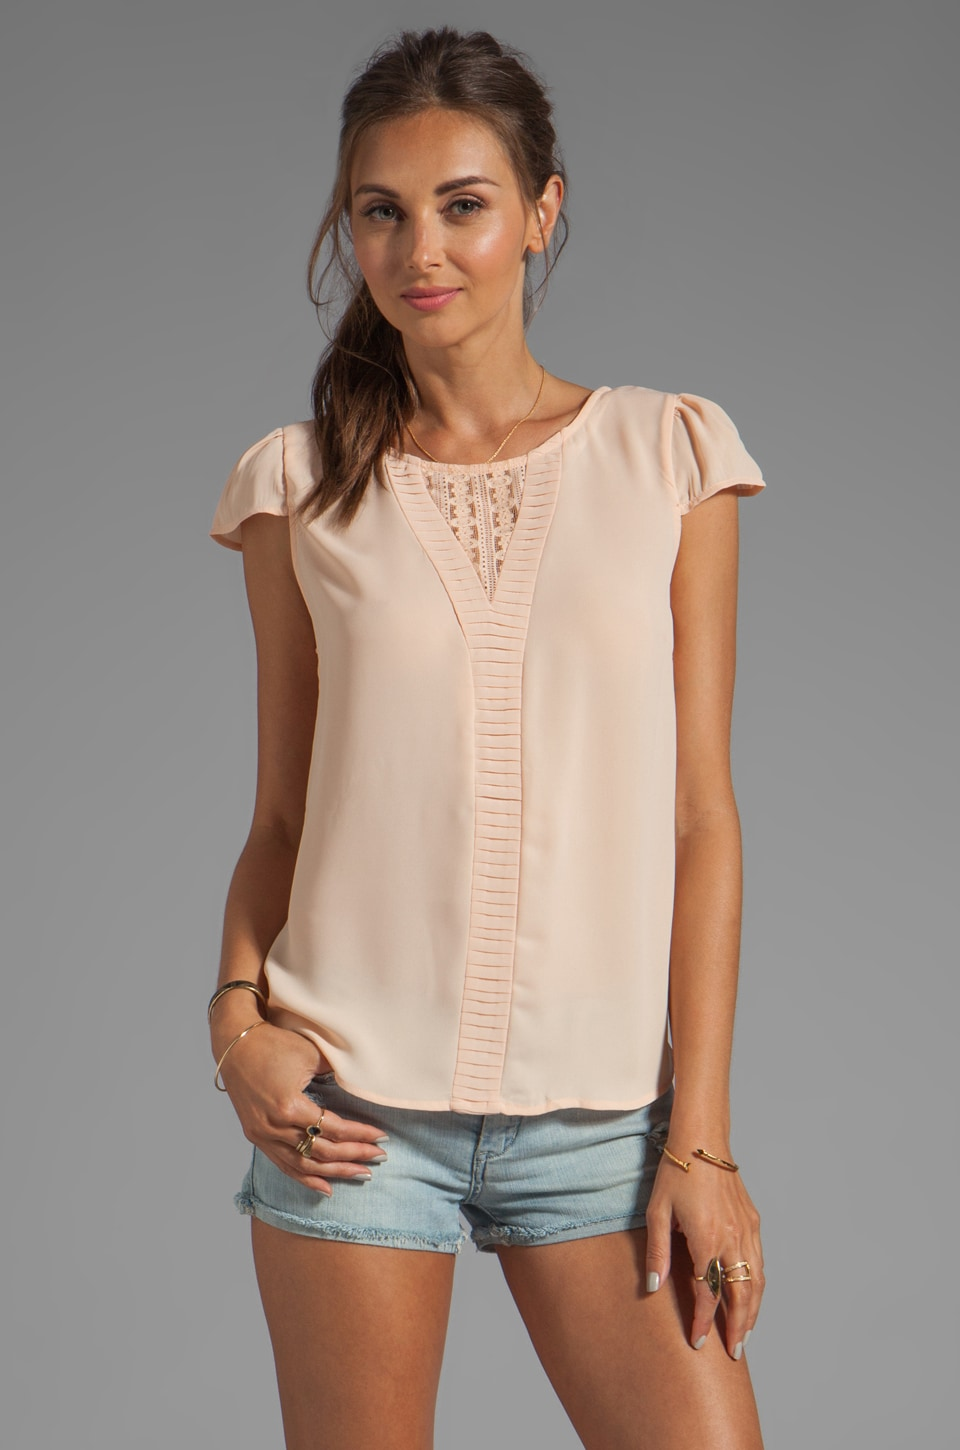 Ladakh Sweet Rose Top in Soft Peach